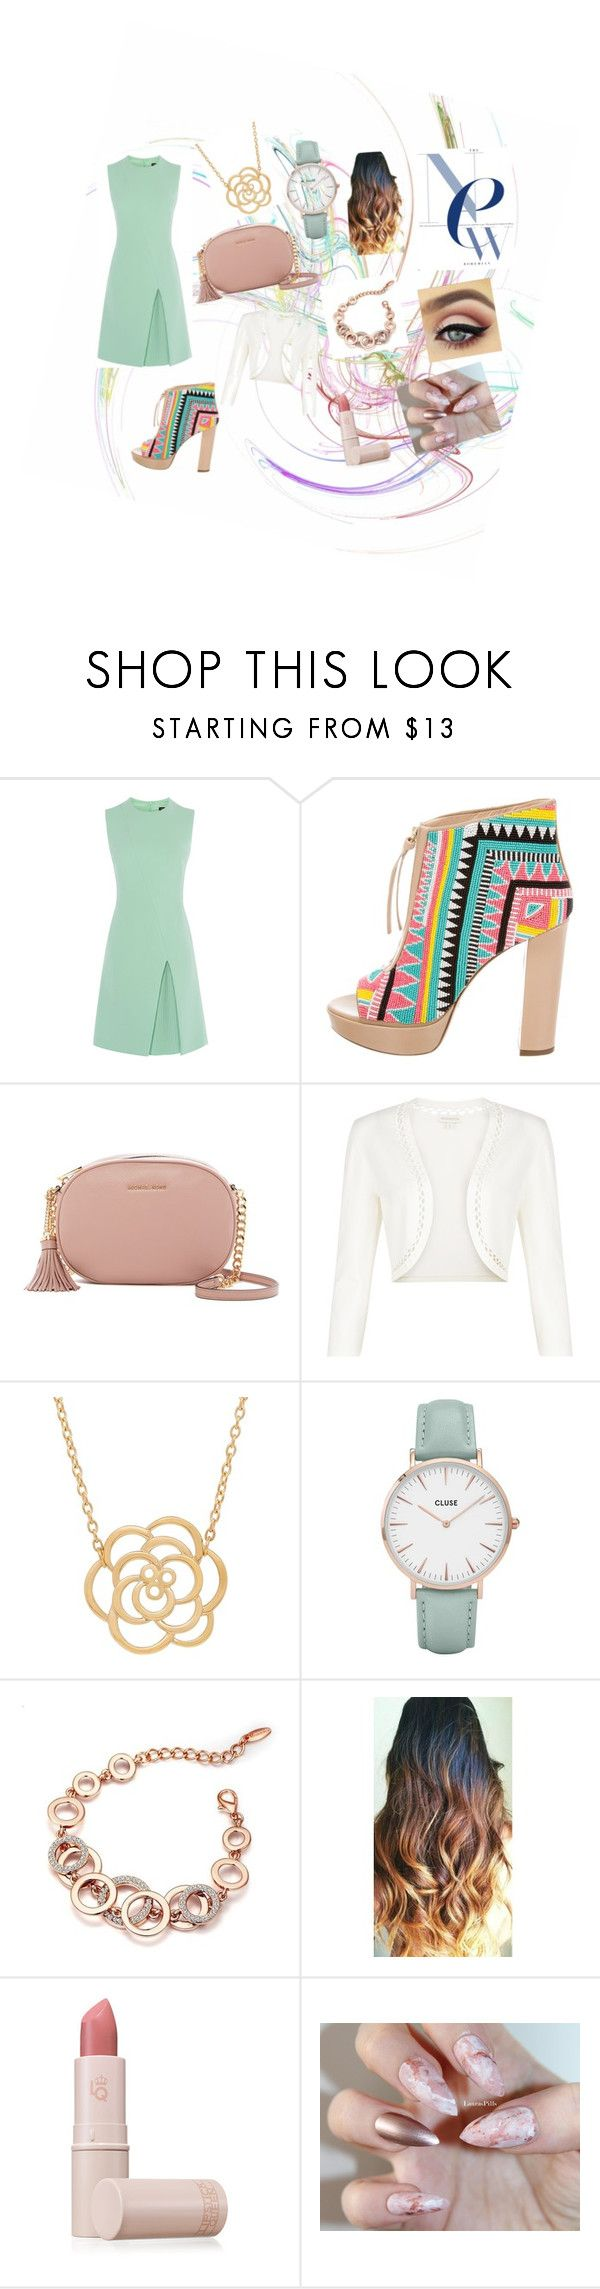 """""""Untitled #4"""" by elena-bowen ❤ liked on Polyvore featuring Jerome C. Rousseau, MICHAEL Michael Kors, Monsoon, Lord & Taylor, CLUSE and Lipstick Queen"""